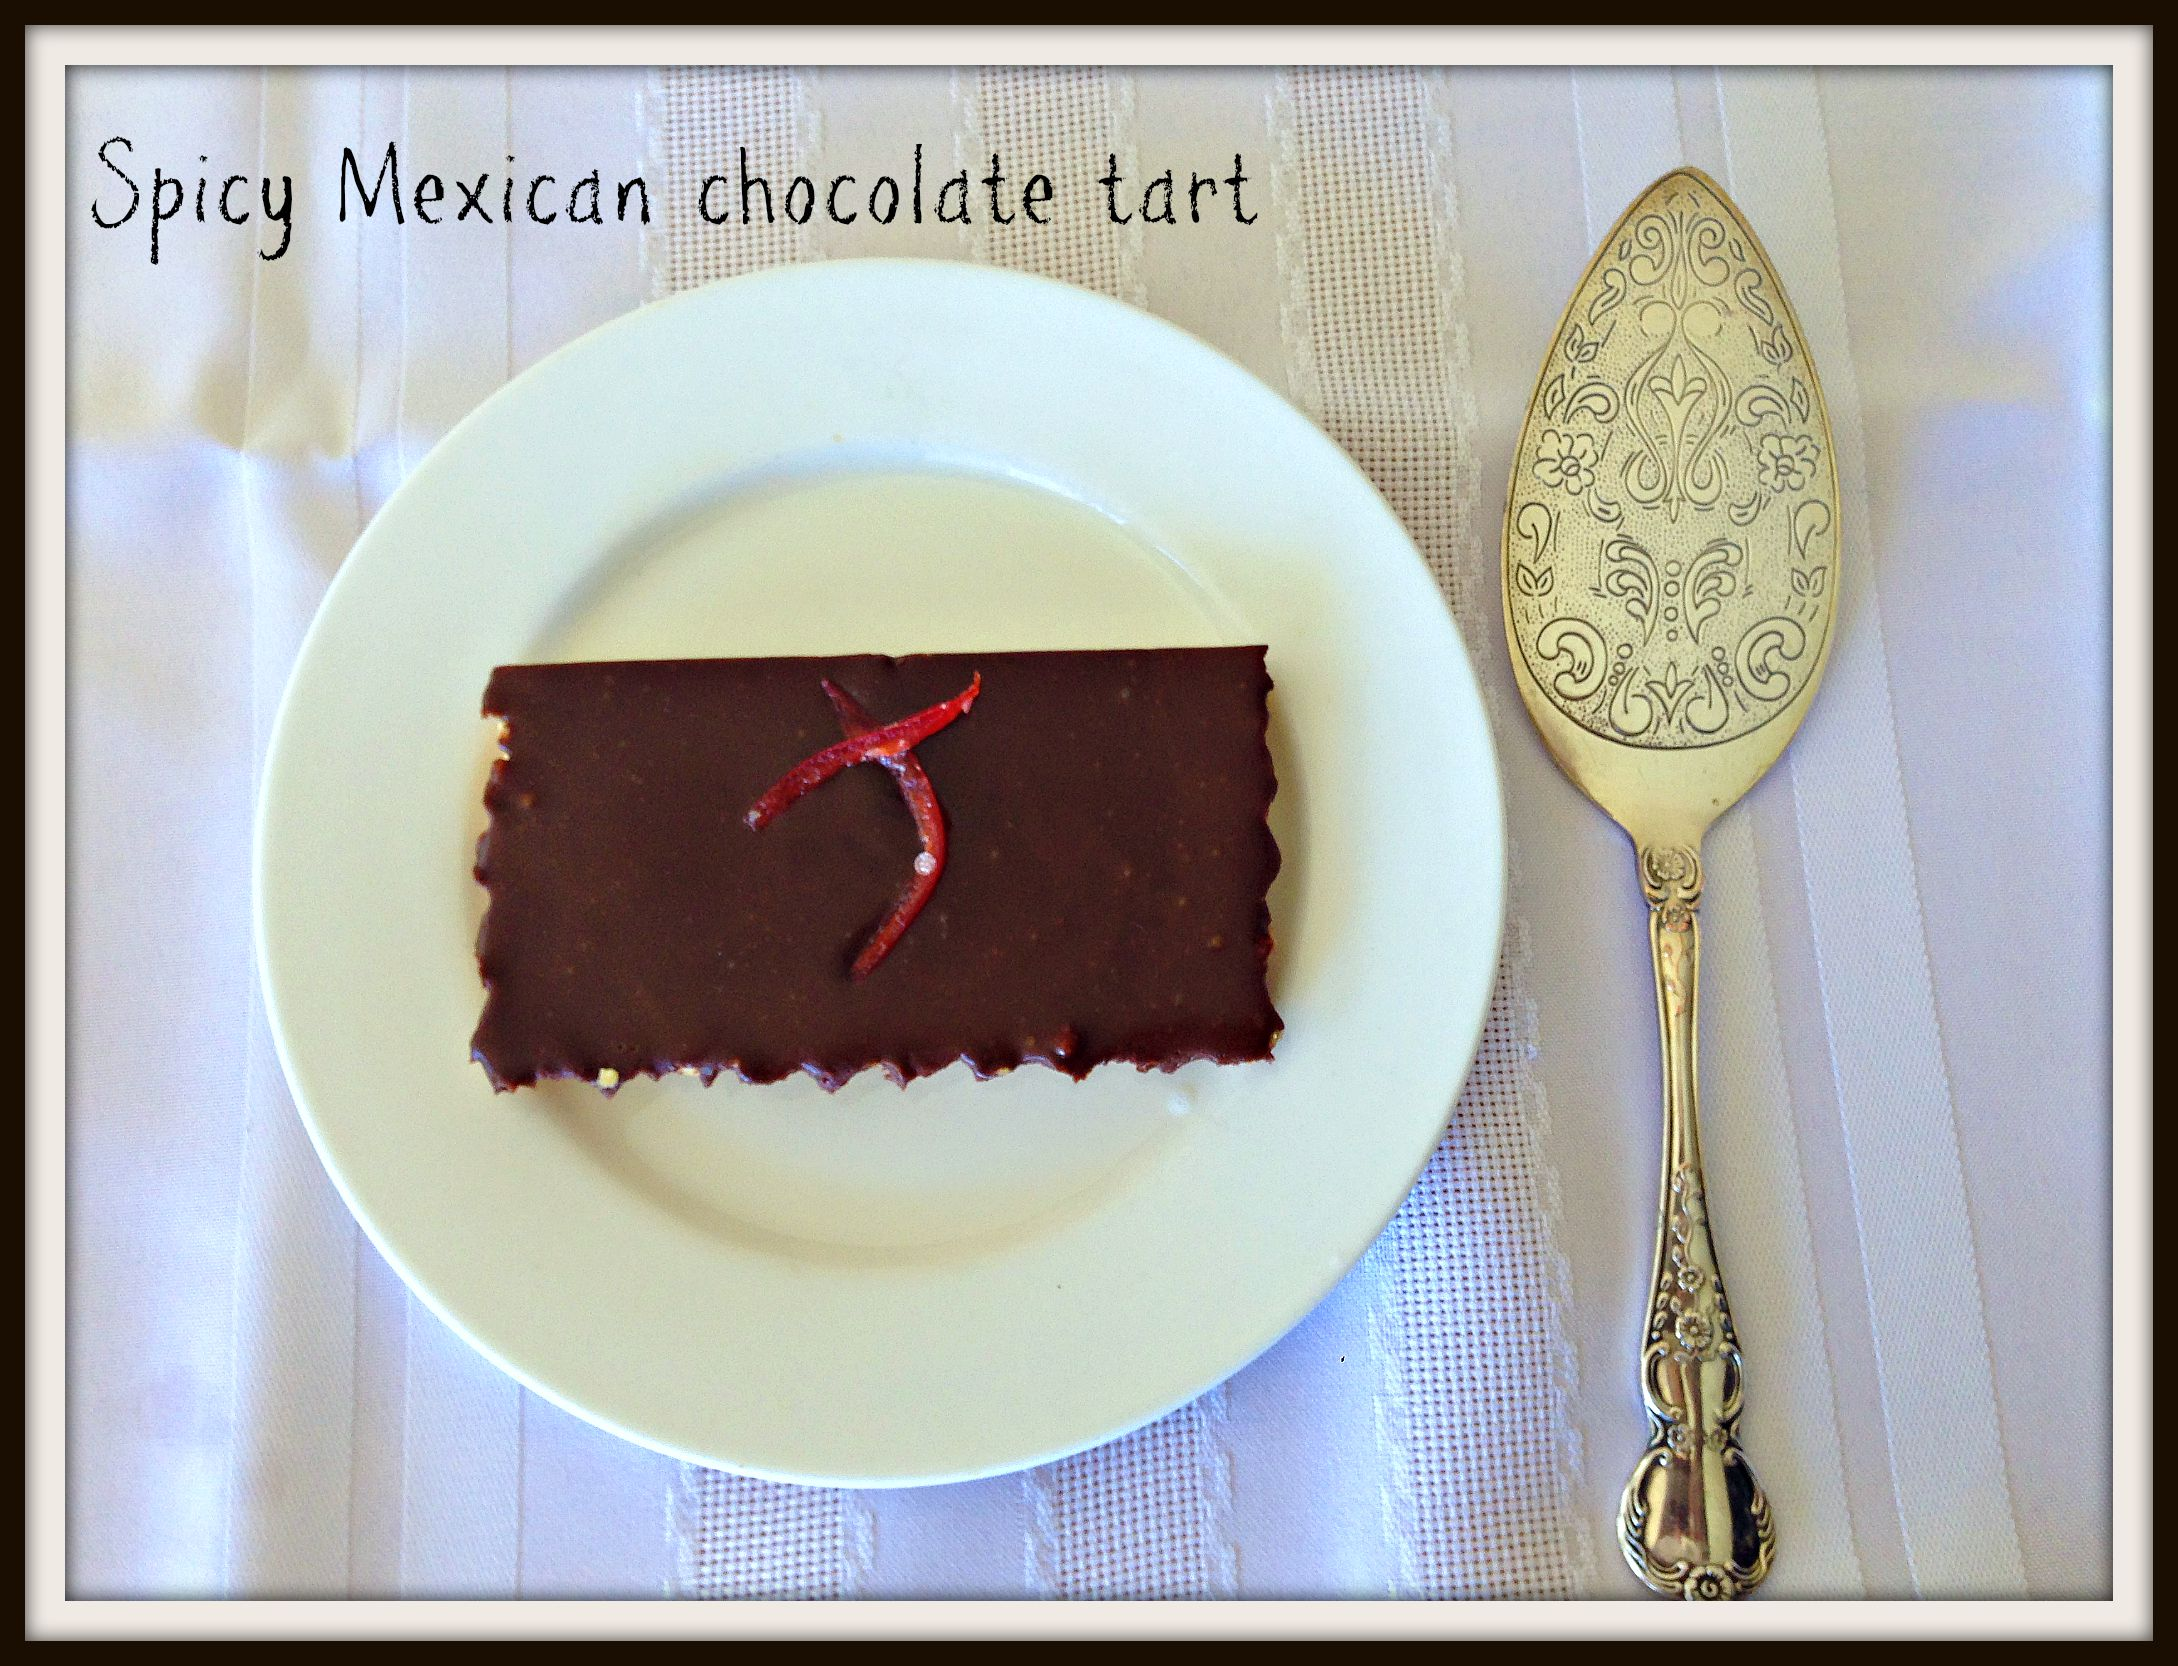 Chilli chocolate cake with tequila